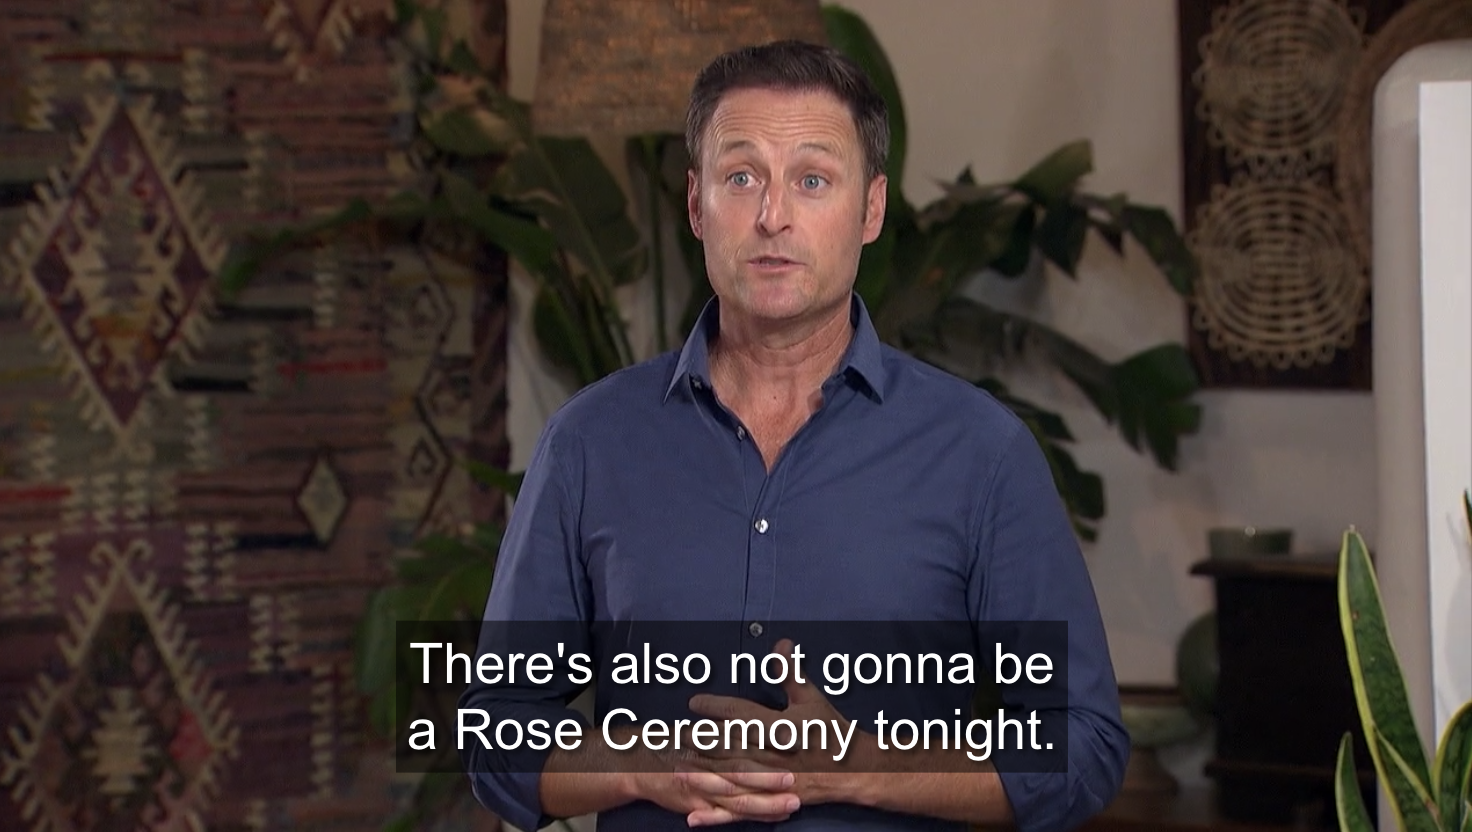 Chris telling the suitors that there's no rose ceremony.